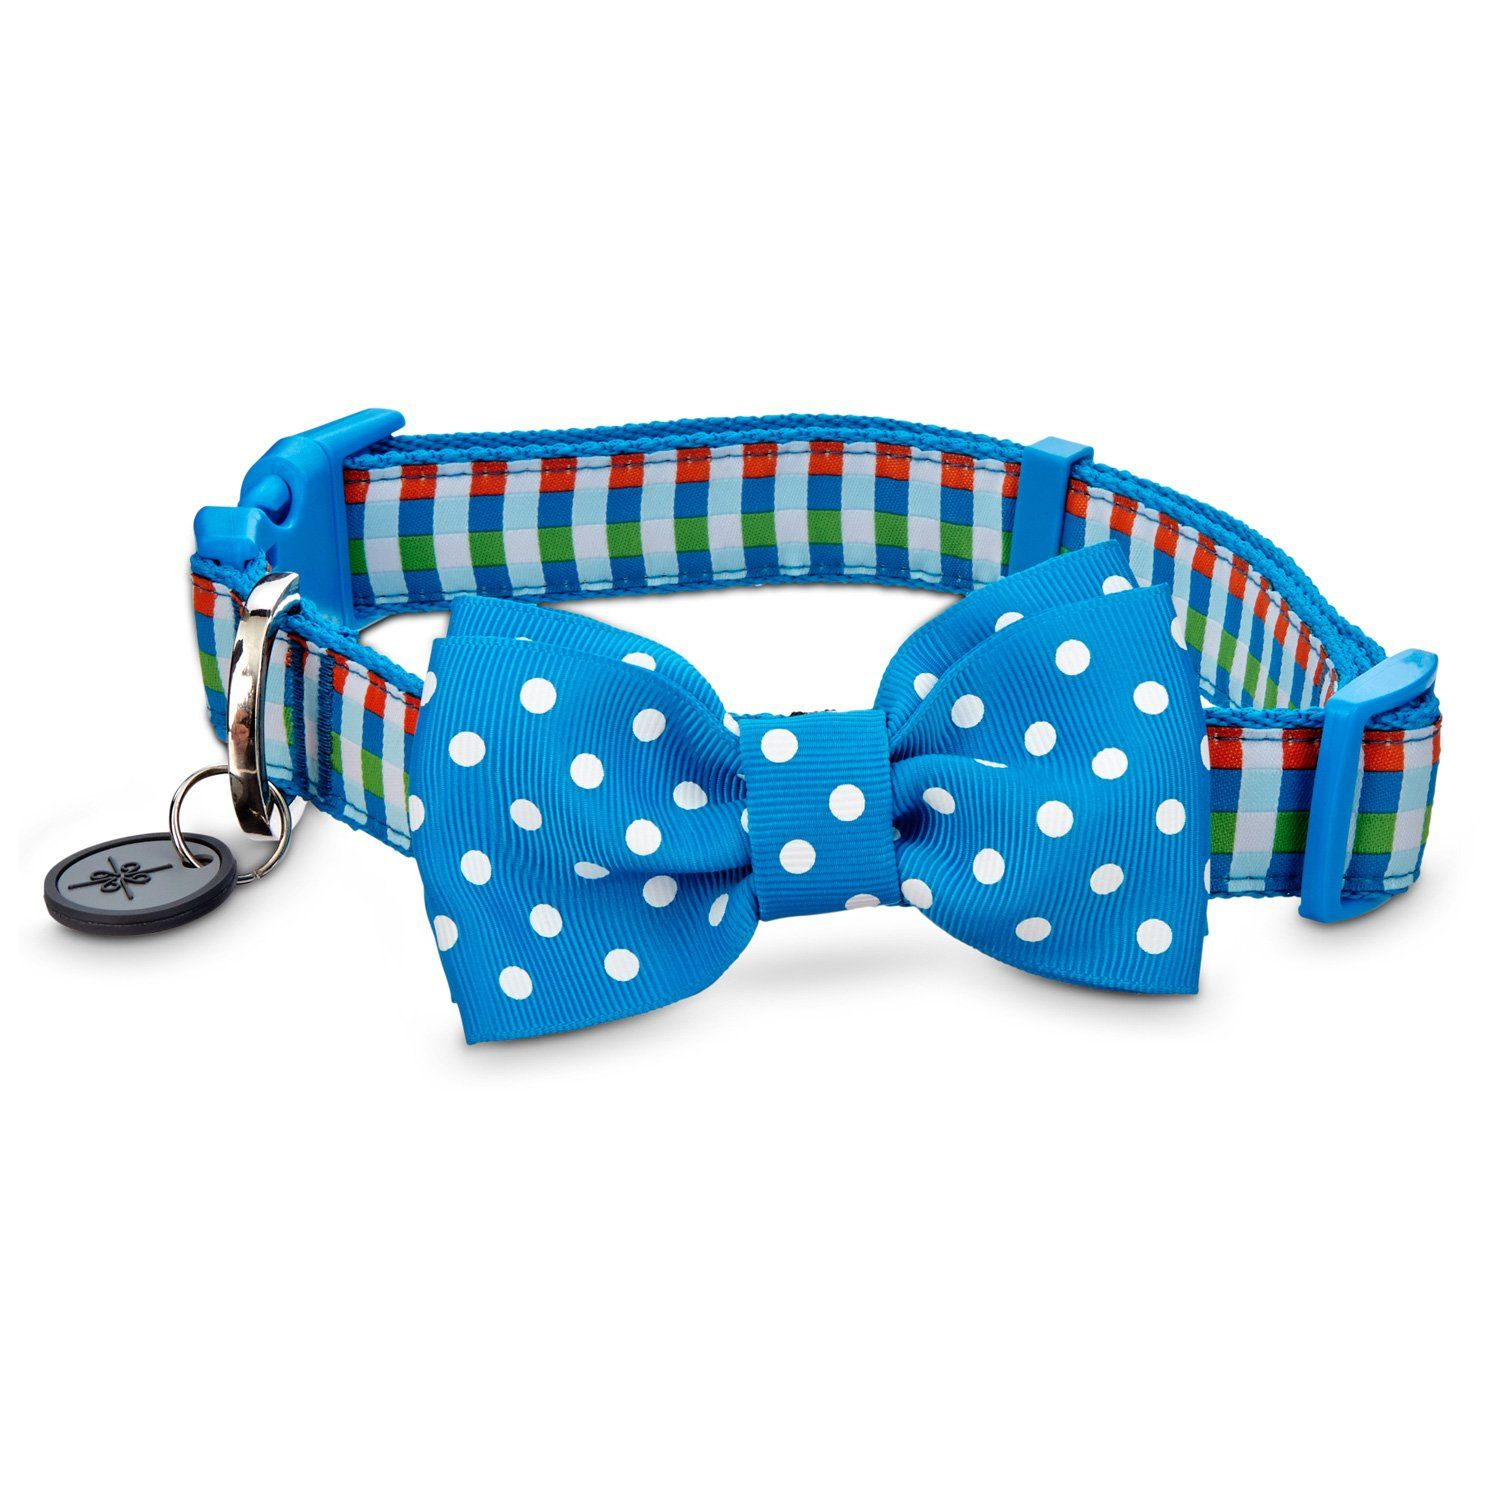 Dog collar featuring a bow tie. Comes with a tag muffler